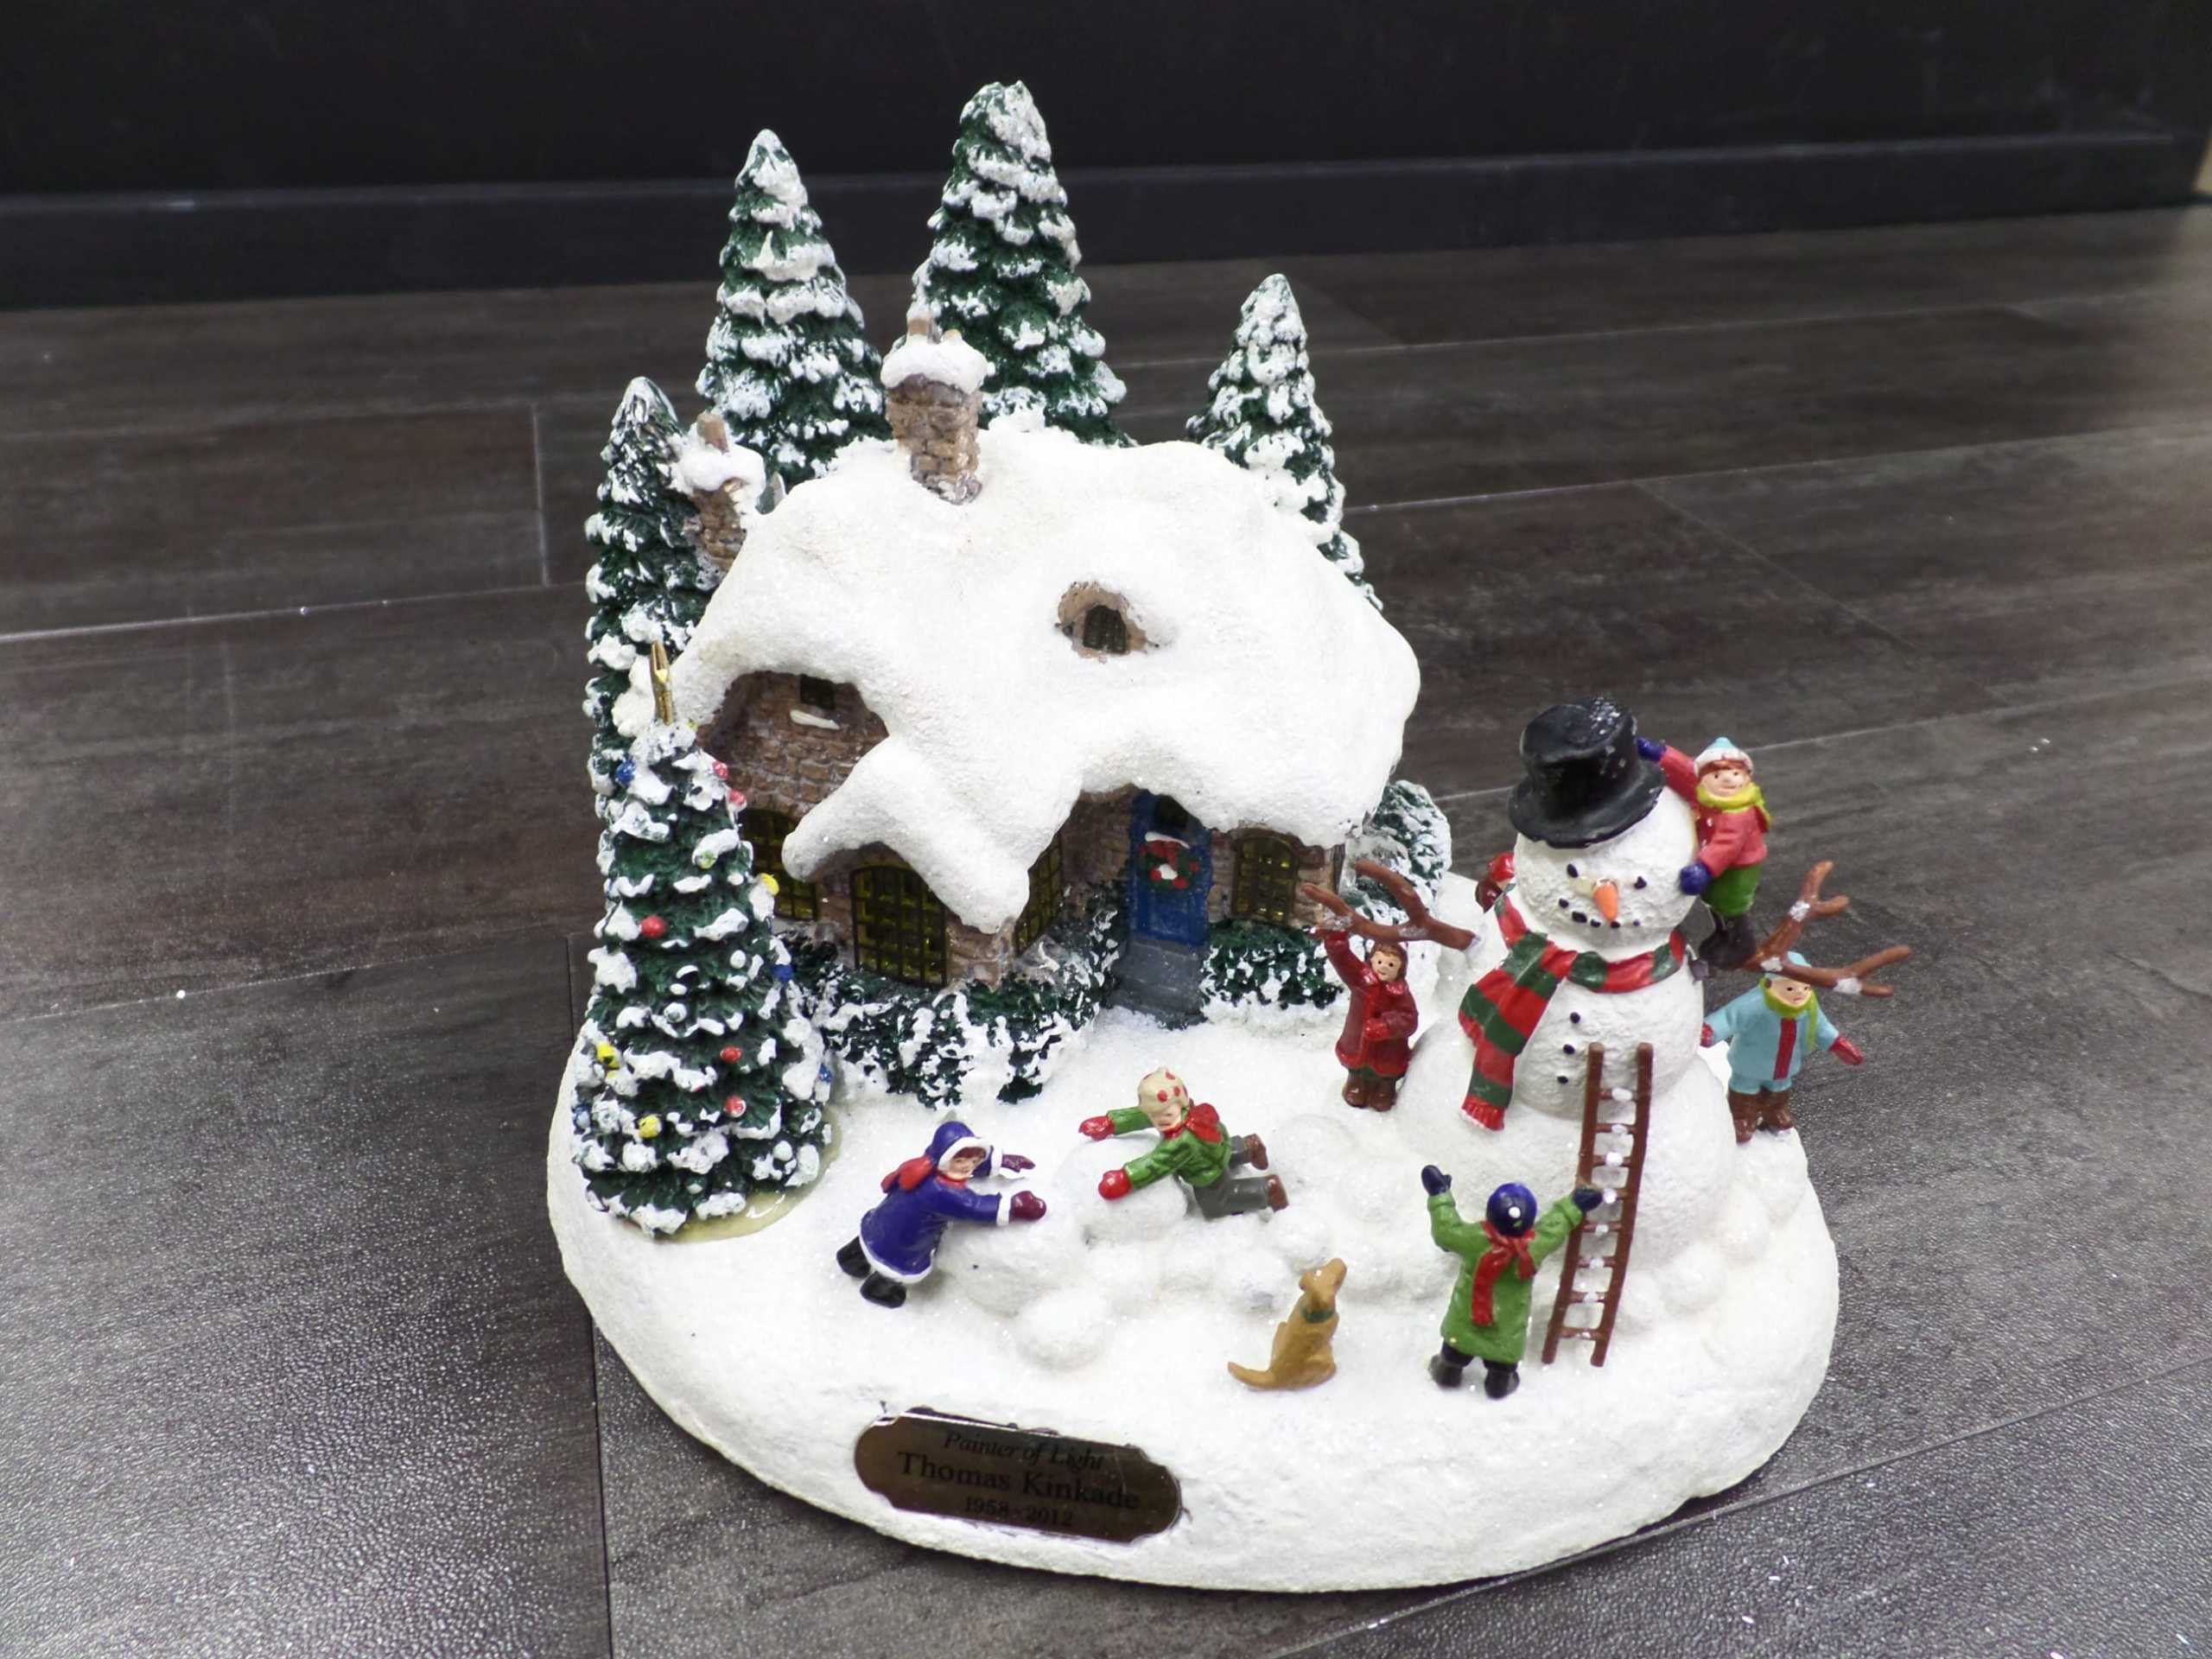 2012 THOMAS KINKADE CHRISTMAS VILLAGE COTTAGE <br/> Donated by: WPBS SUPPORTER <br/> Valued at: $30 <br/> Buy It Now: $20